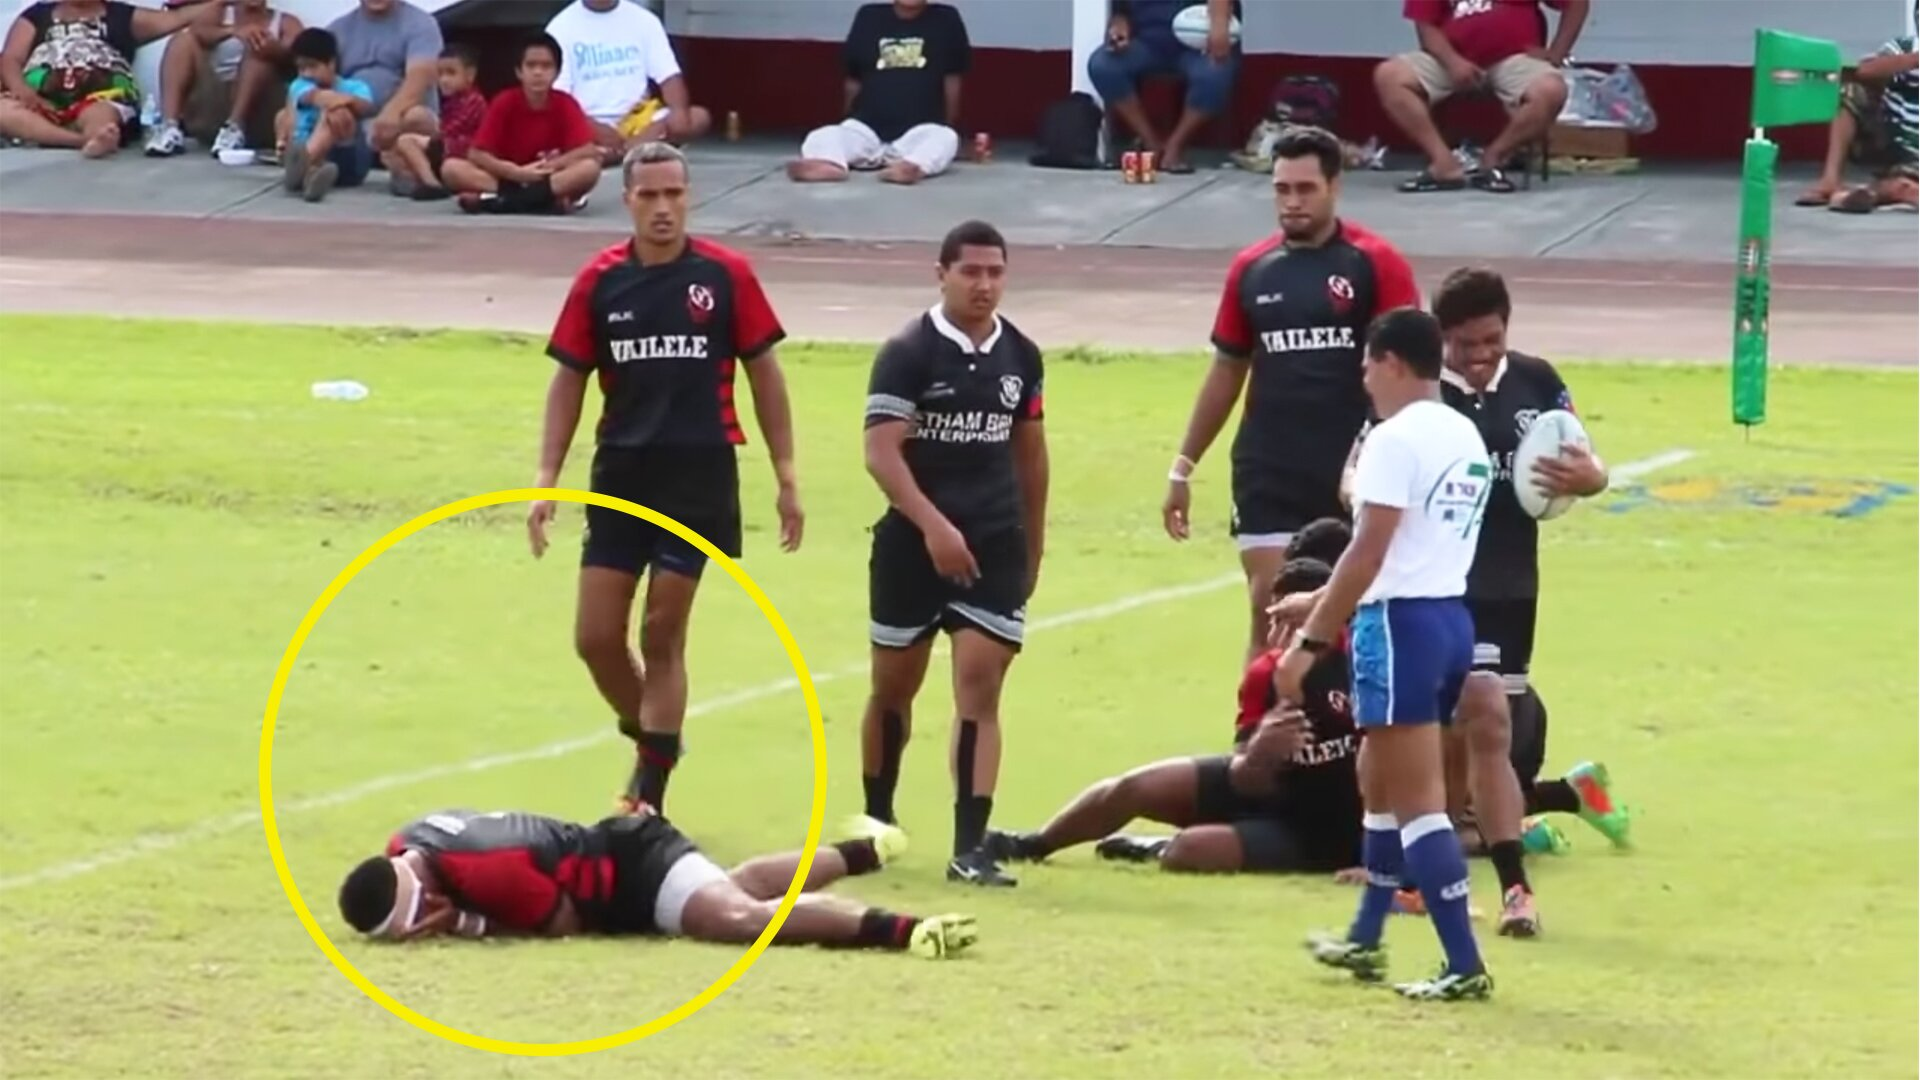 When Rugby Players Dive/Fake Injury